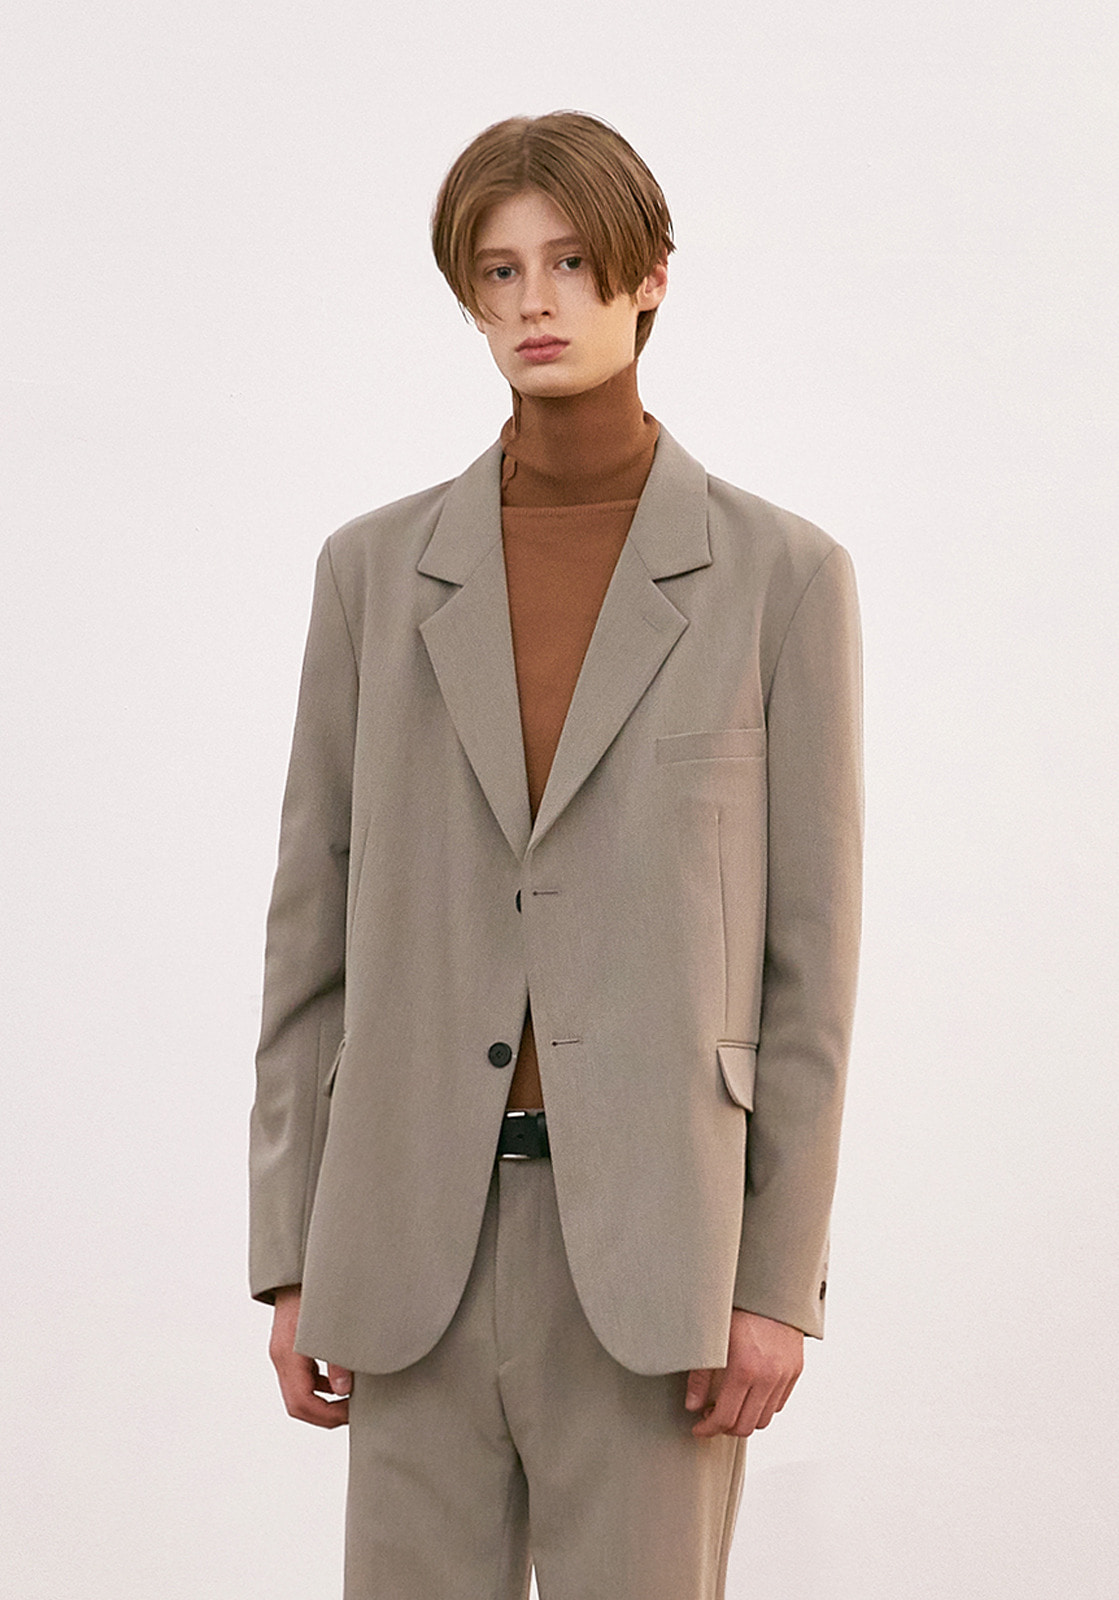 V643 WRINKLE OVERSIZE SINGLE JACKET  BEIGE